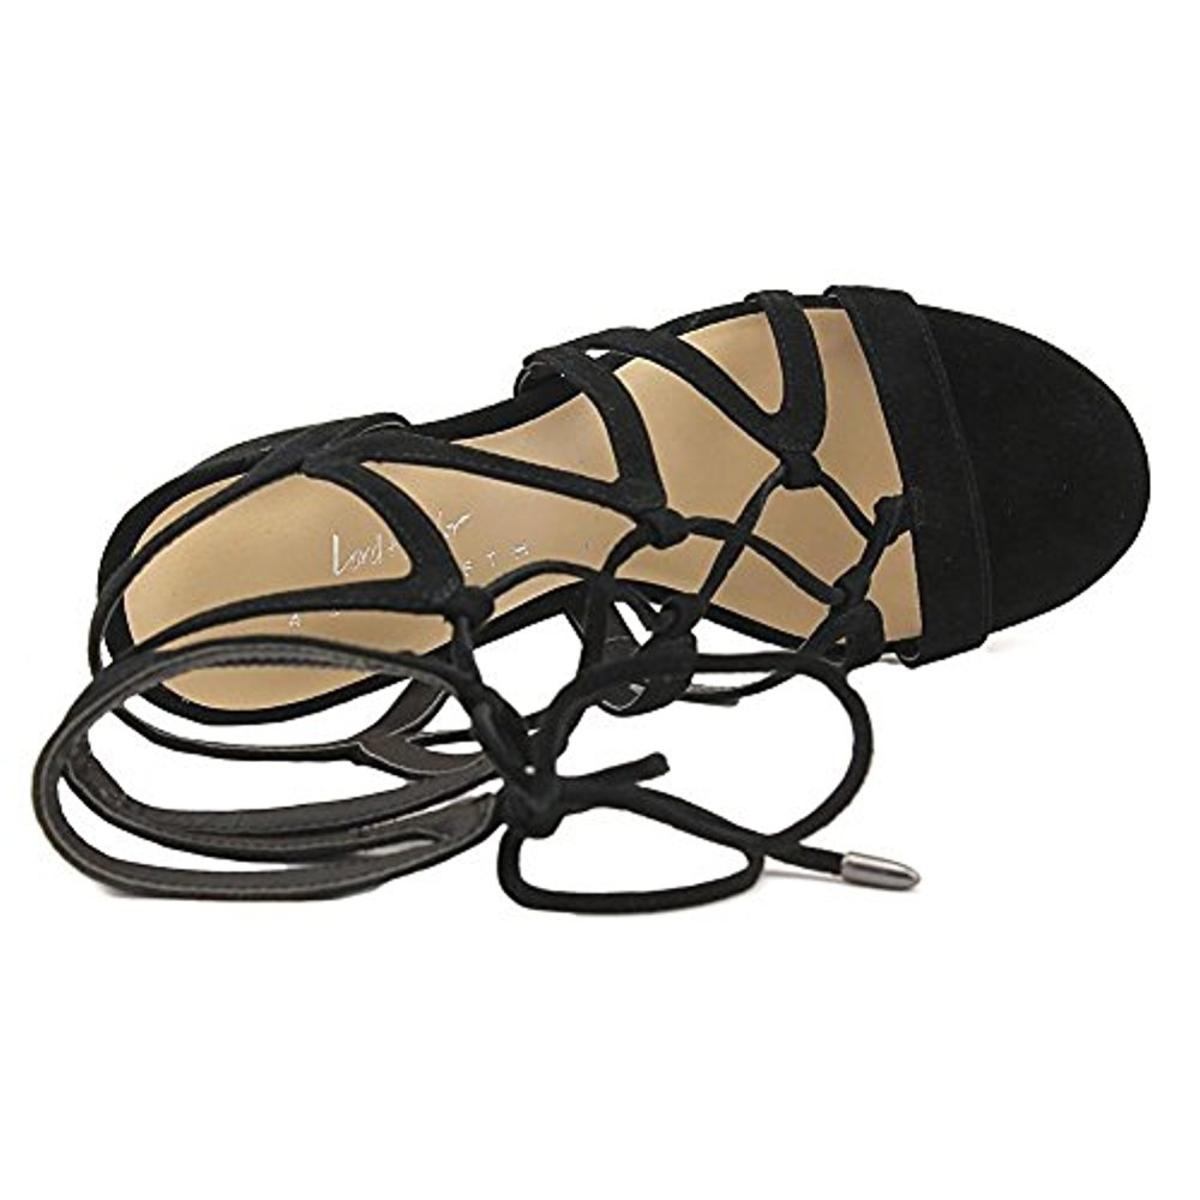 424-Fifth-Womens-Honey-Suede-Caged-Open-Toe-Dress-Sandals-Shoes-BHFO-2224 thumbnail 9